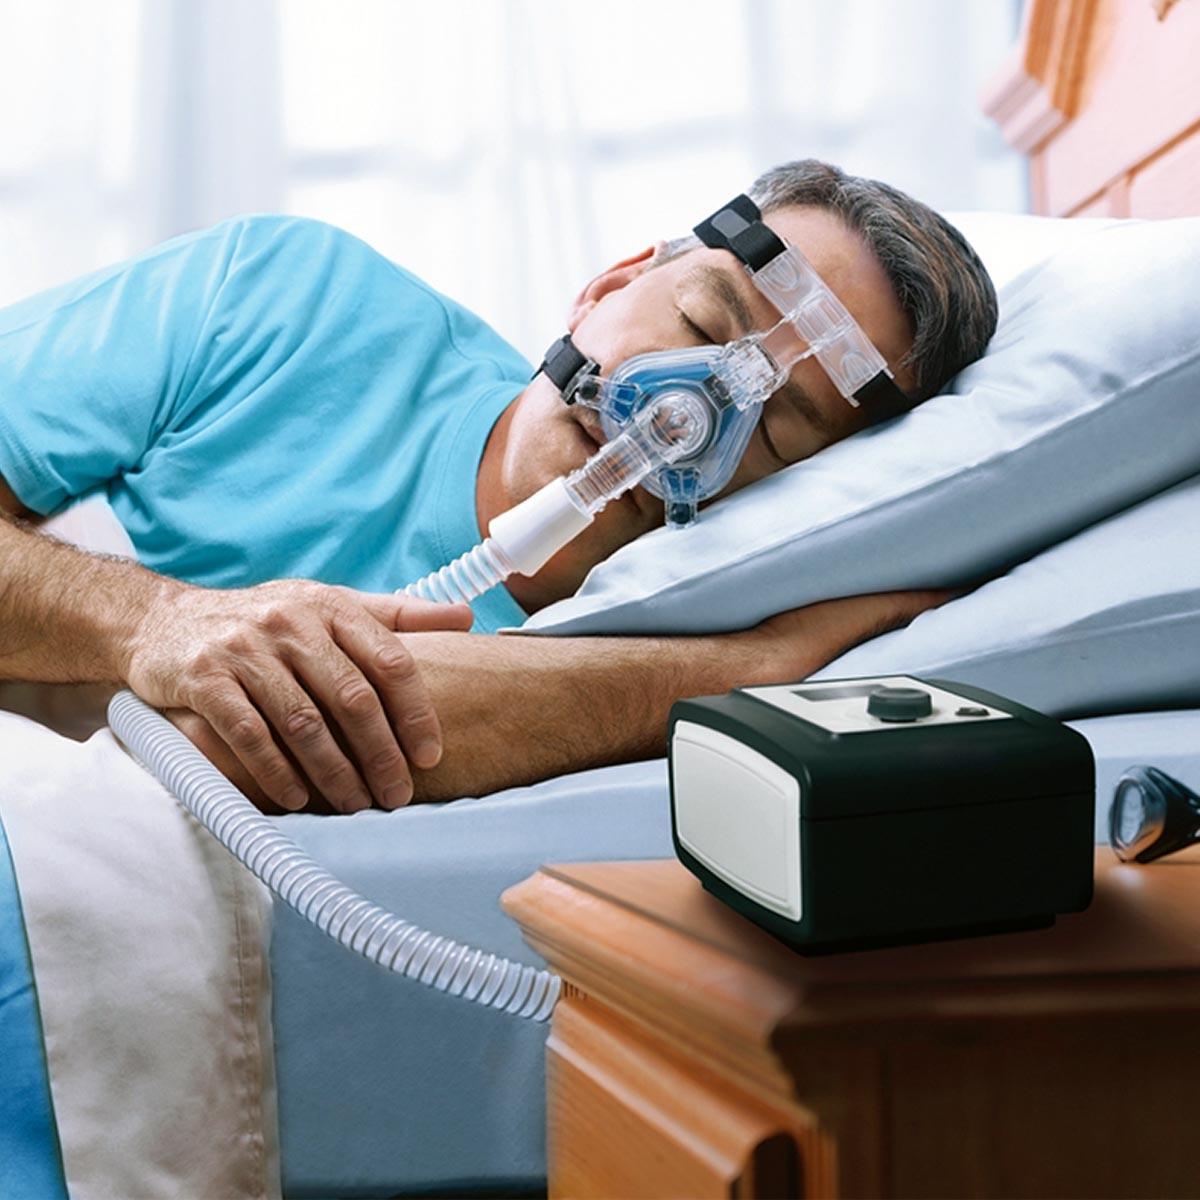 Aparato Dental Para Dormir Adaptando Se A Terapia Do Sono Com Cpap